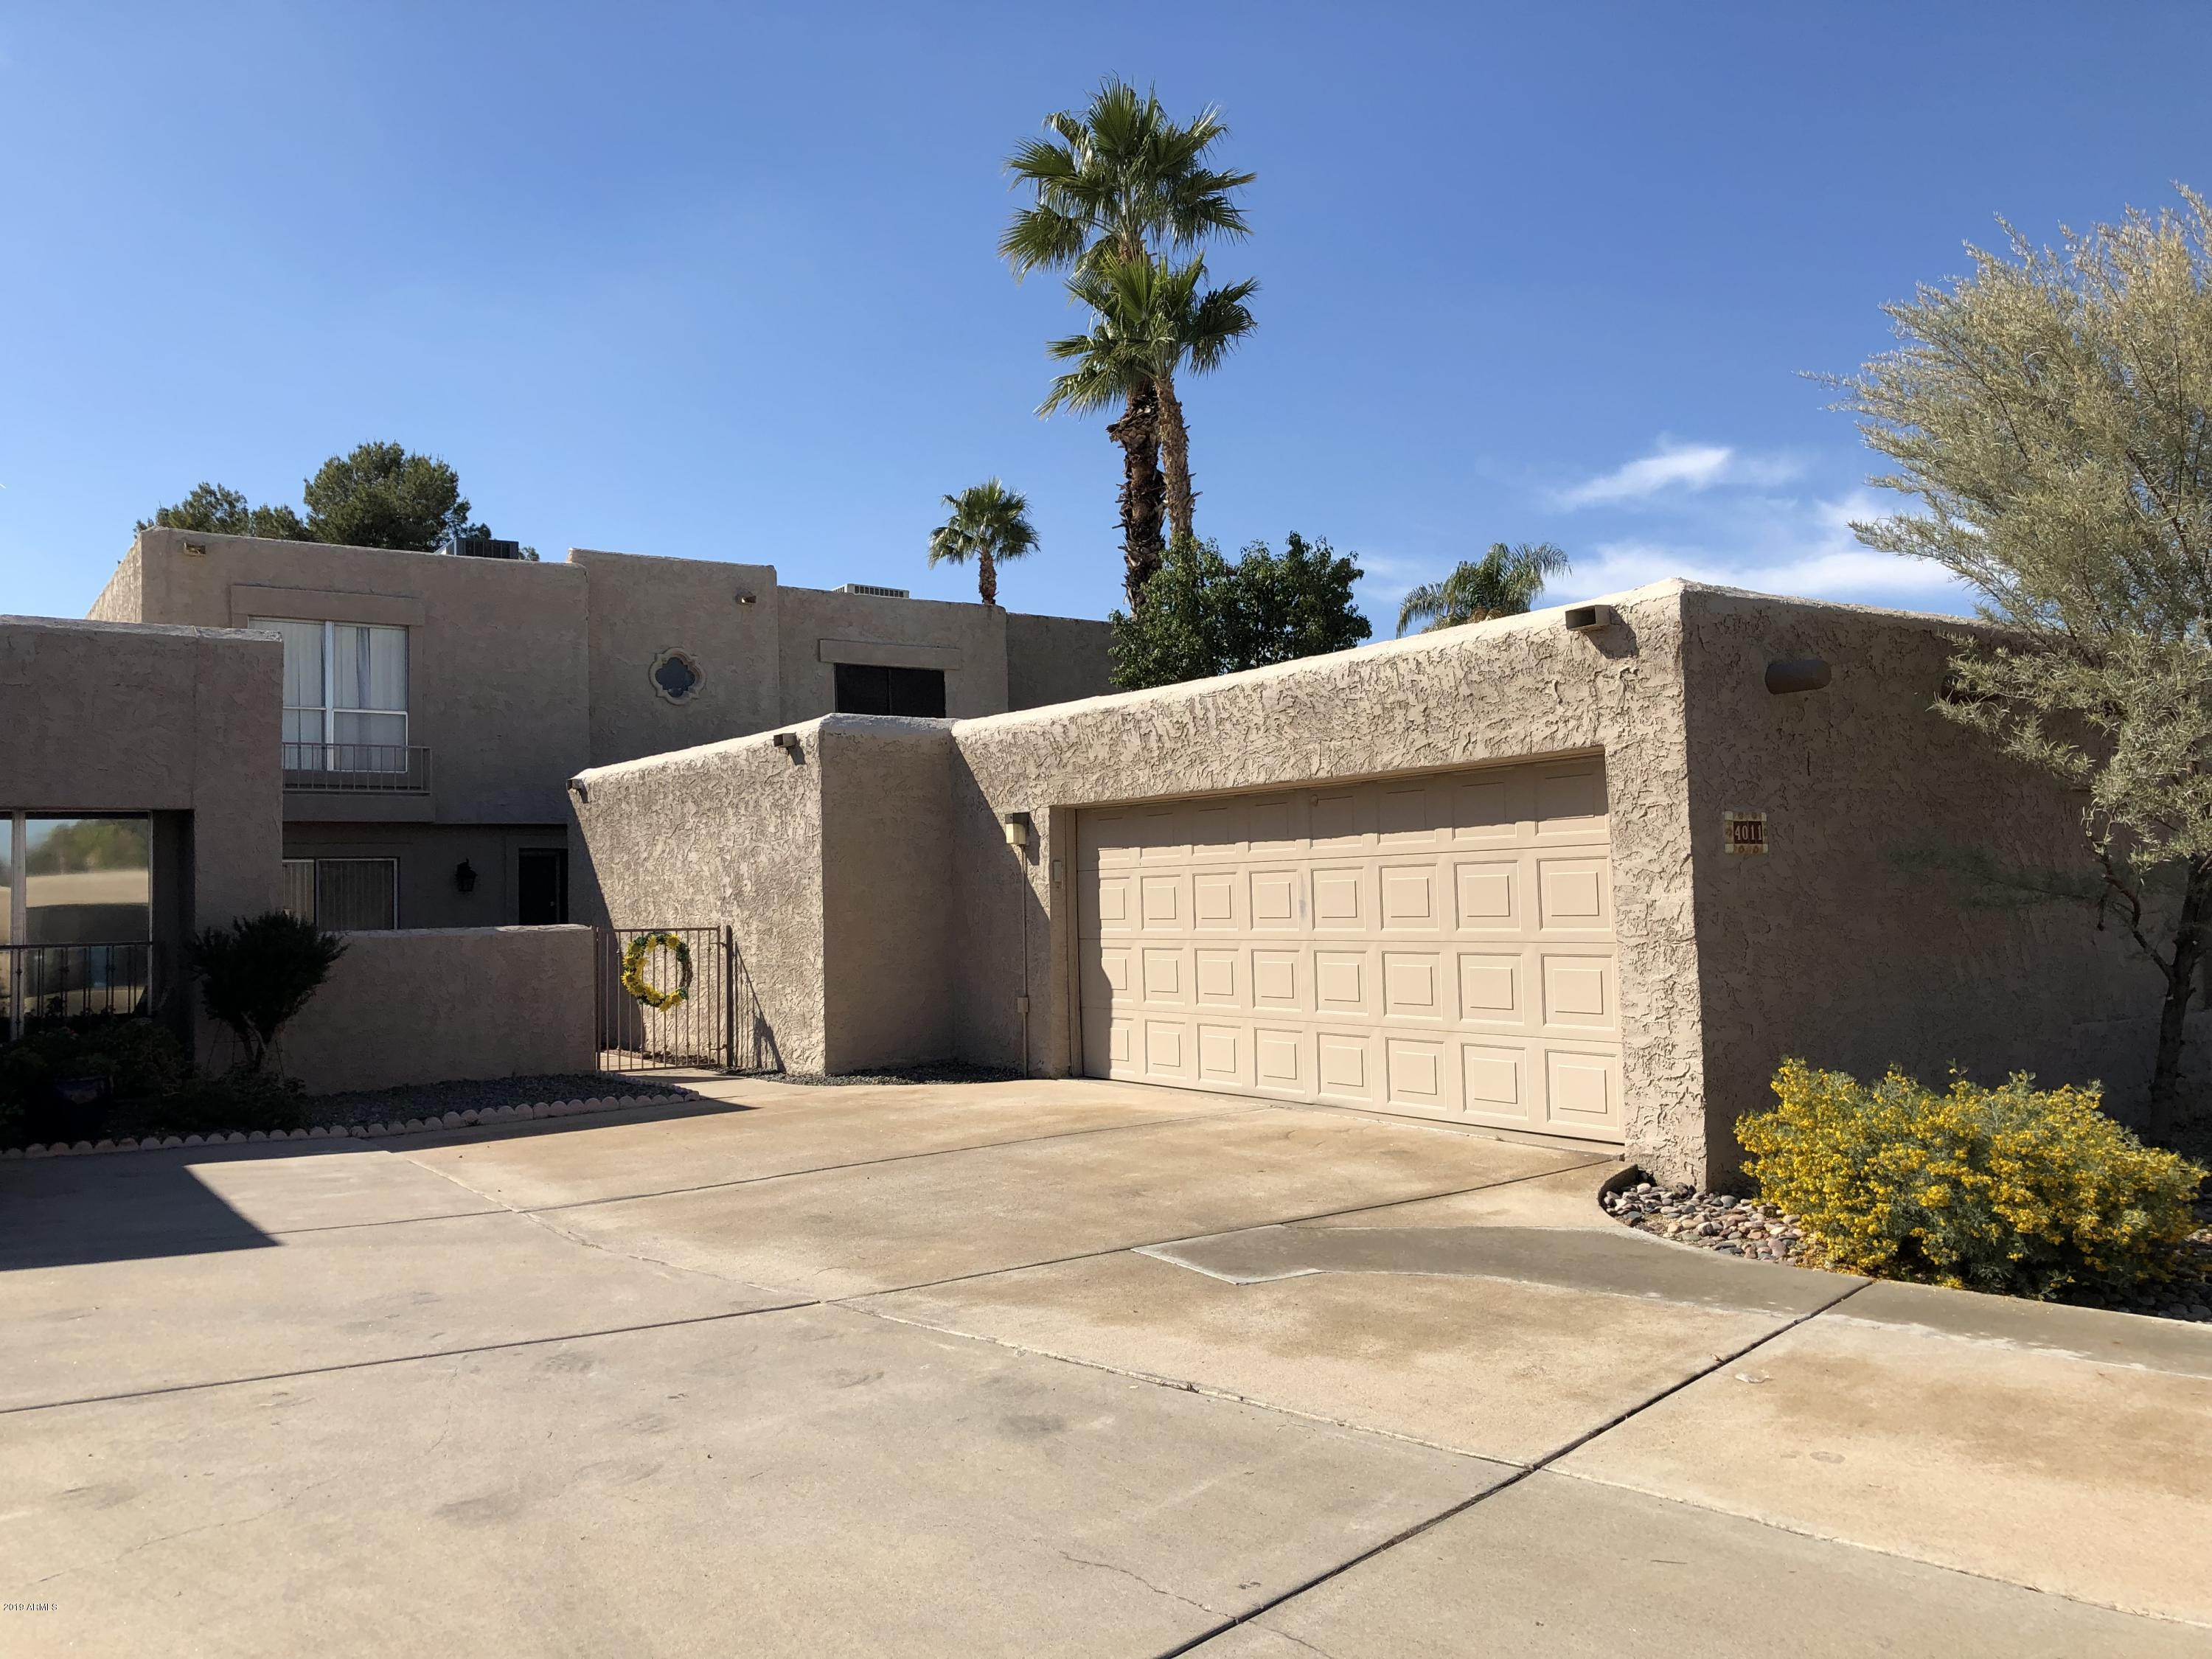 Photo of 4011 E CHARTER OAK Road, Phoenix, AZ 85032